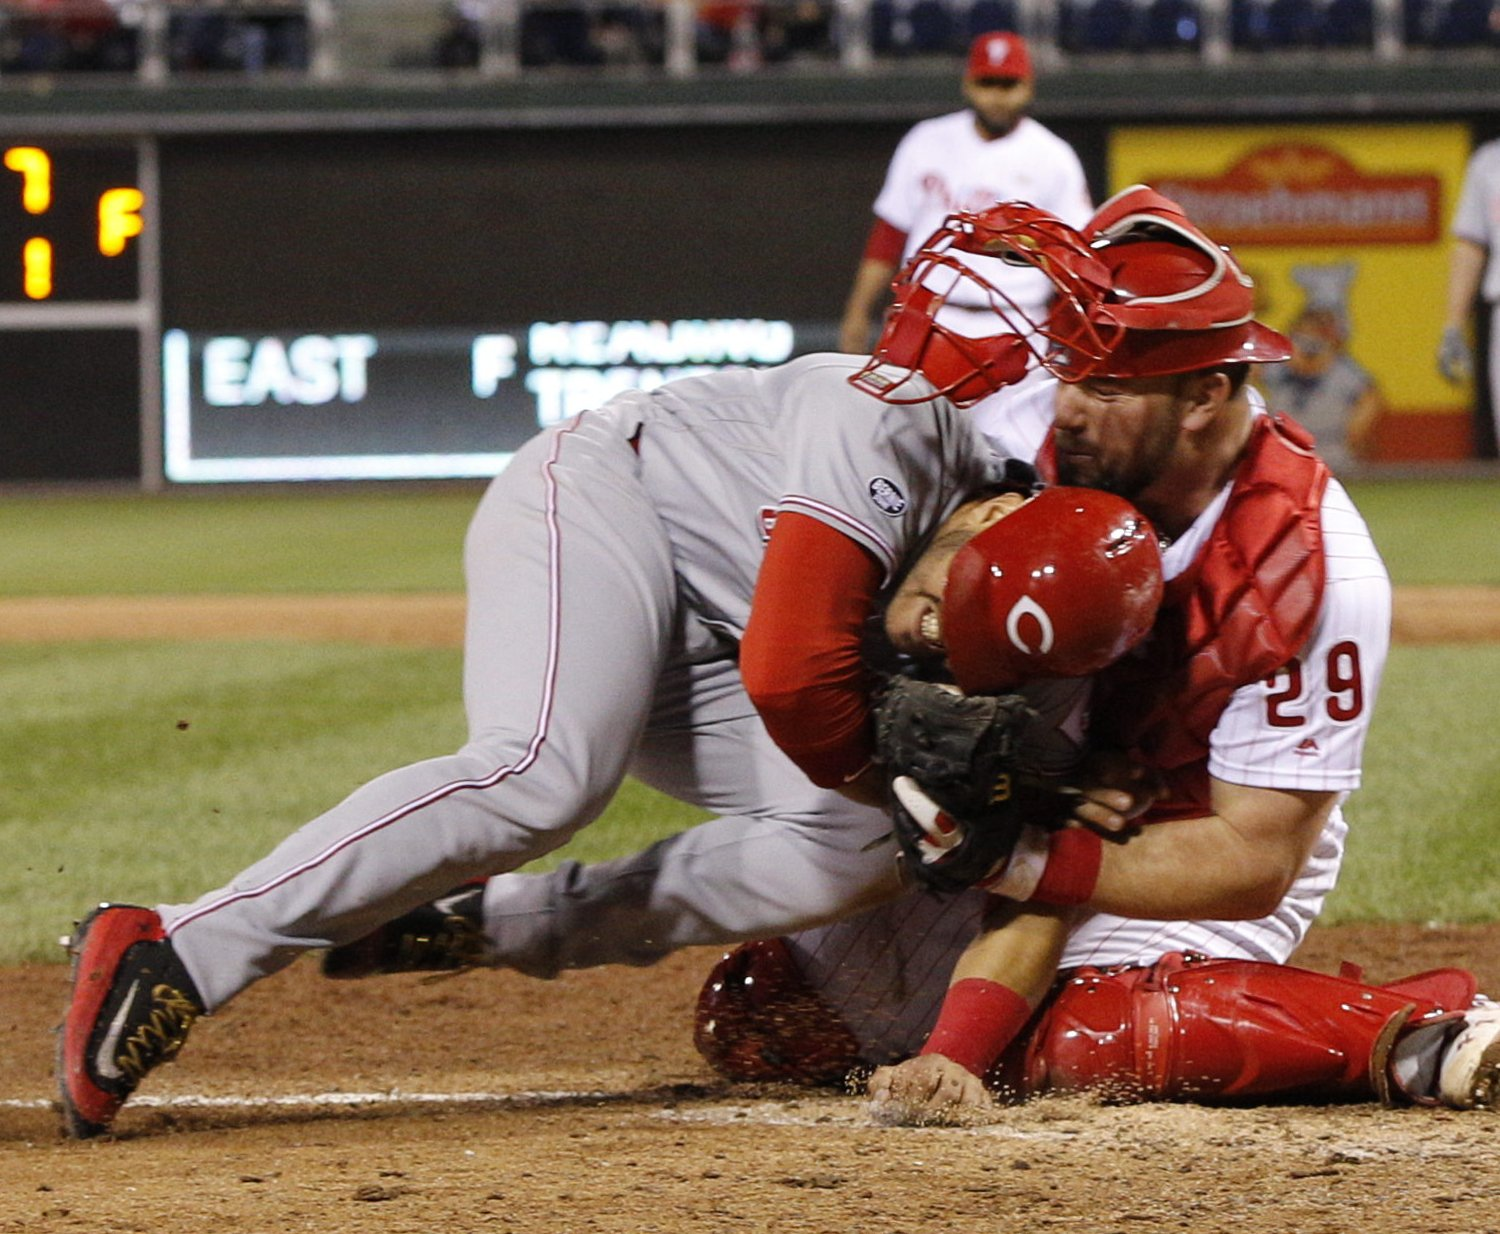 Phillies' Cameron Rupp Withstands Home Plate Collision to Seal Win over Reds | Bleacher Report